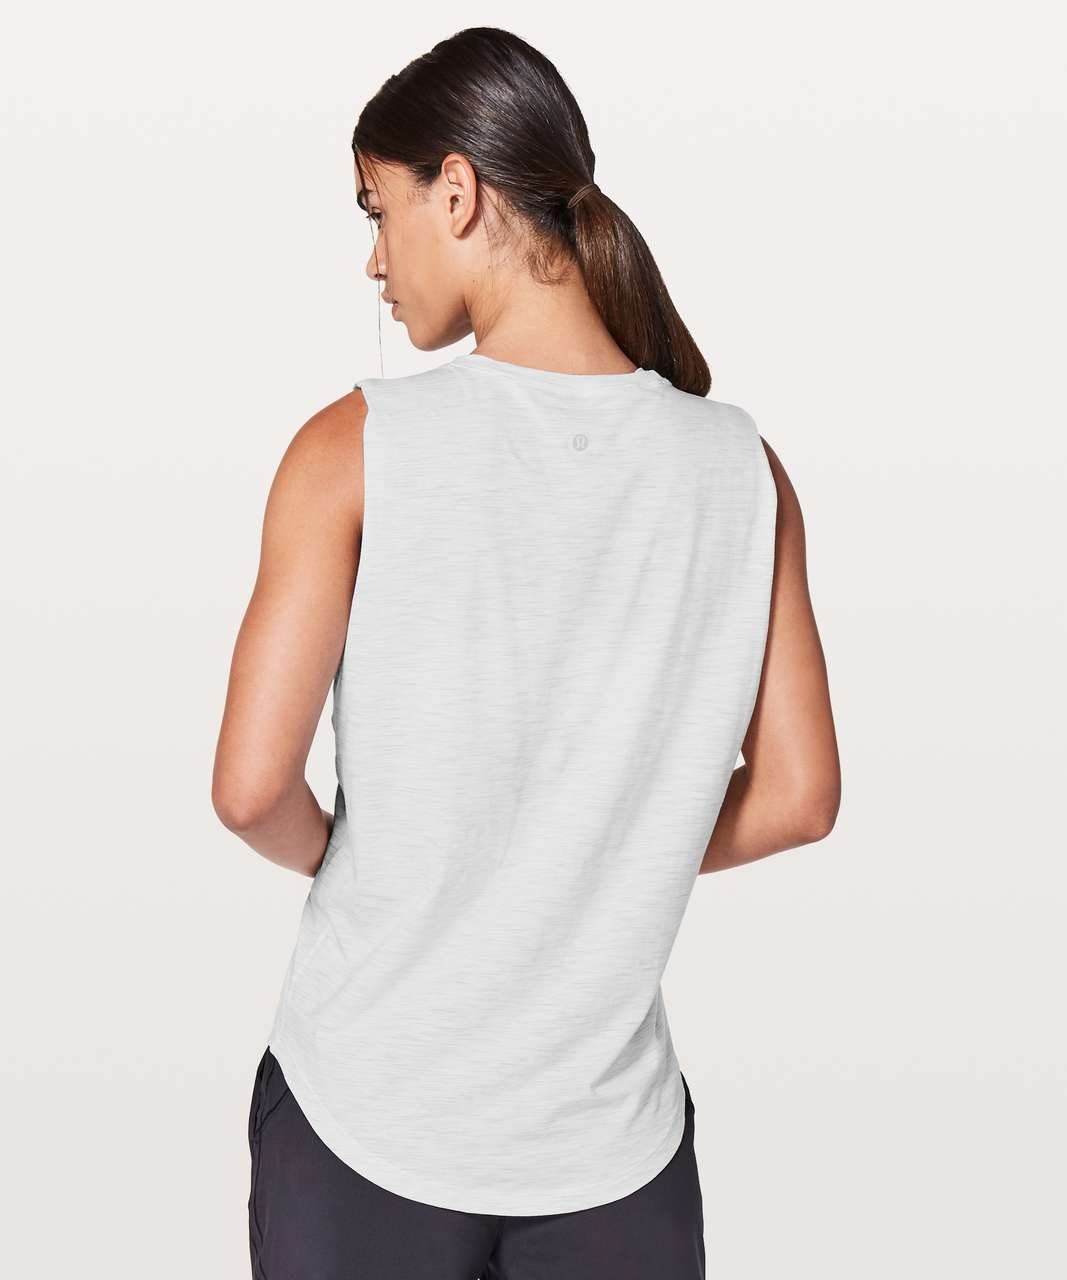 Lululemon Brunswick Muscle Tank - 3 Colour Space Dye Ice Grey Alpine White